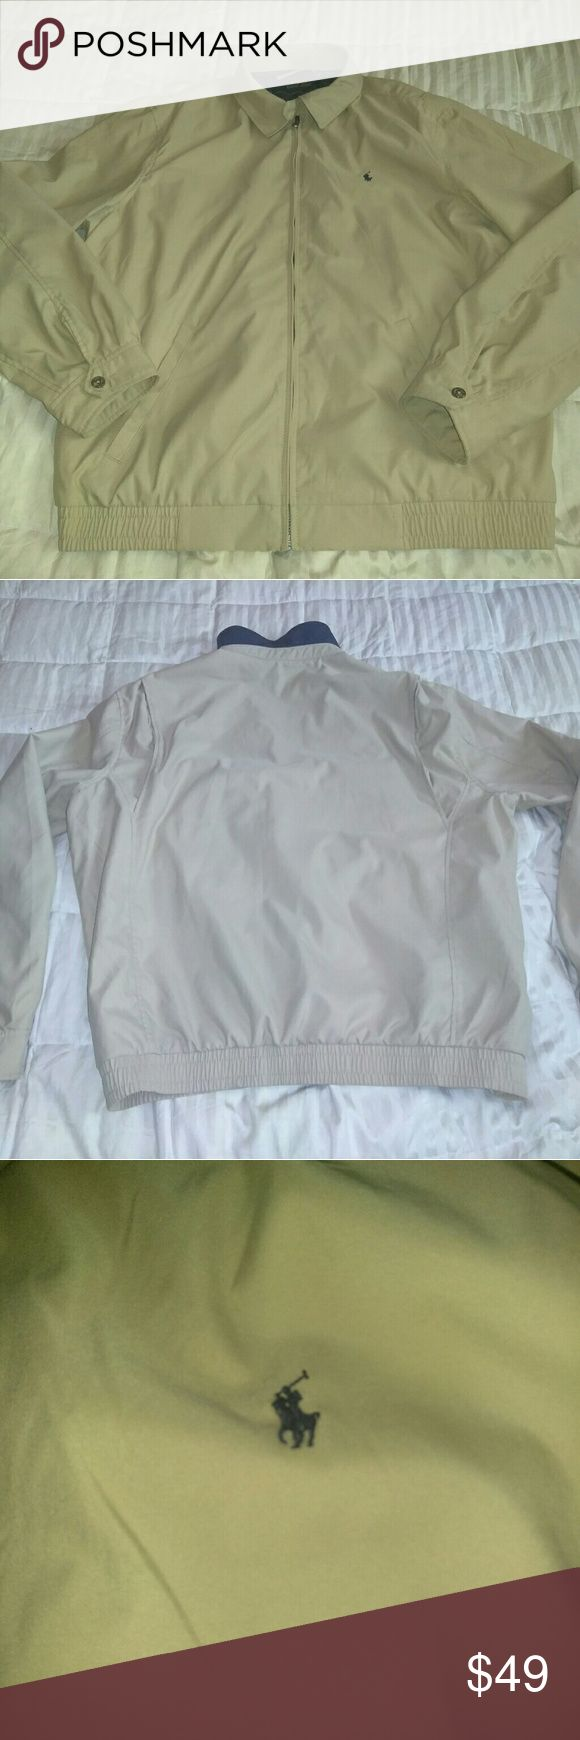 Large ralph lauren polo jacket men l xl m NWOT Large Polo jacket worn once to big on me paid $125 from Macy's soft outside really really nice khaki colored windbreaker weatherproof jacket Polo by Ralph Lauren Jackets & Coats